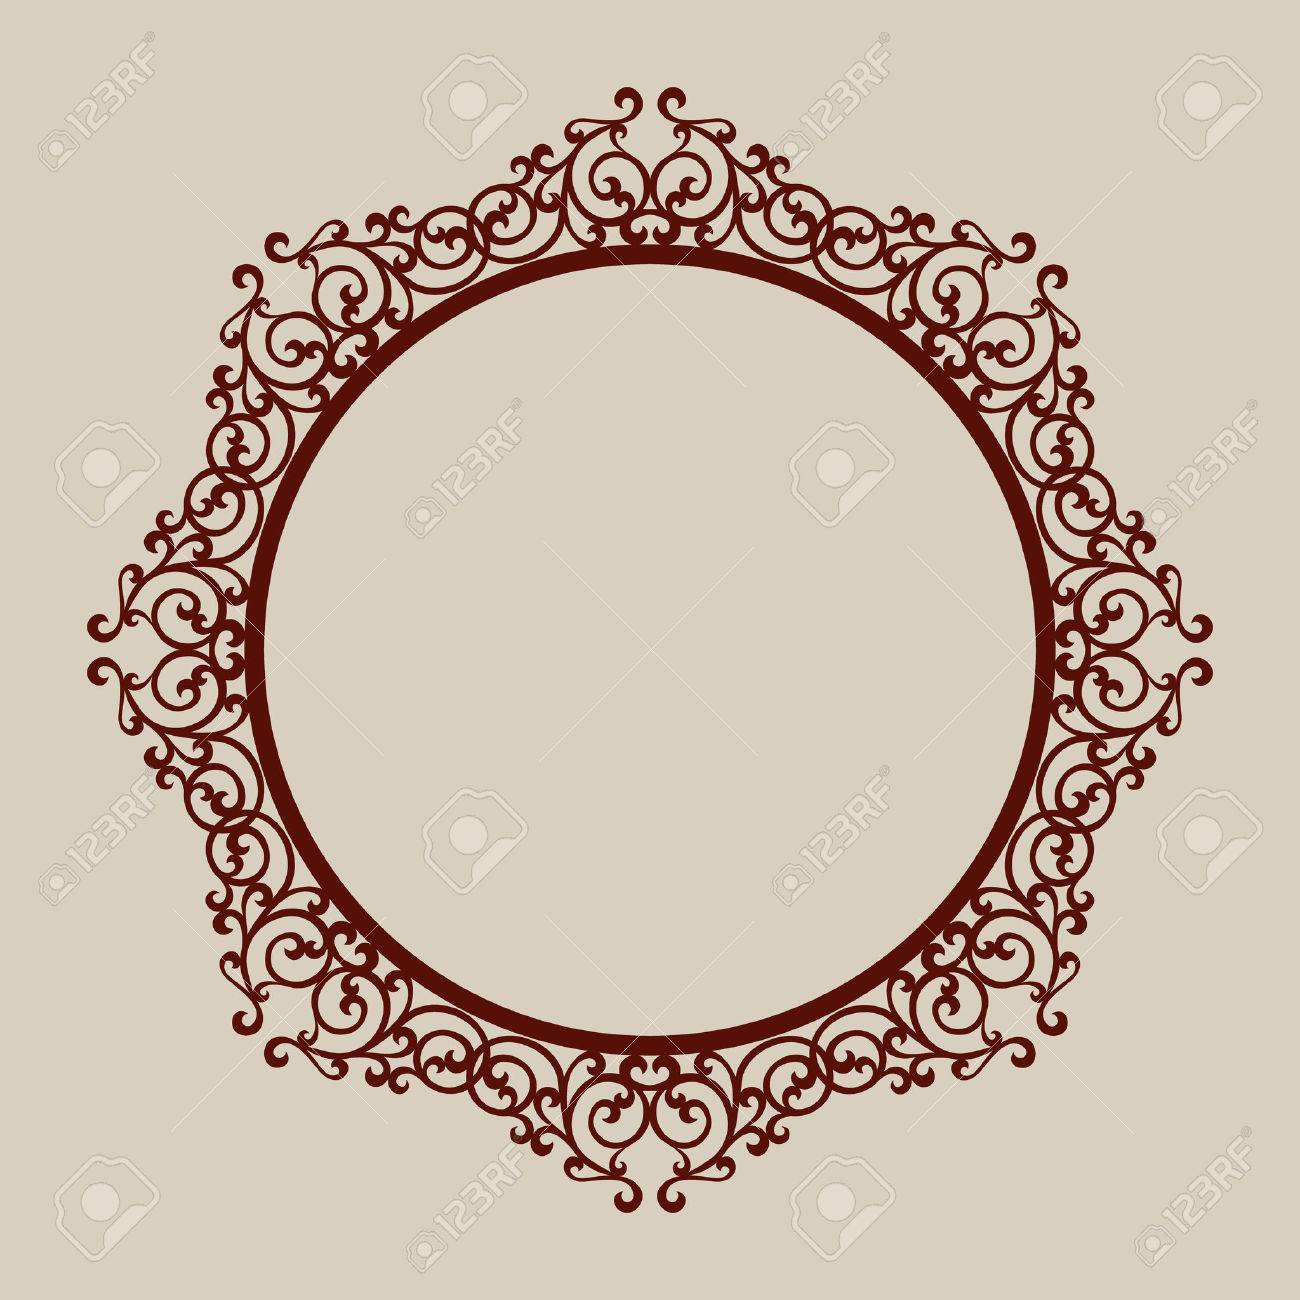 abstract round frame with swirls template for laser cutting